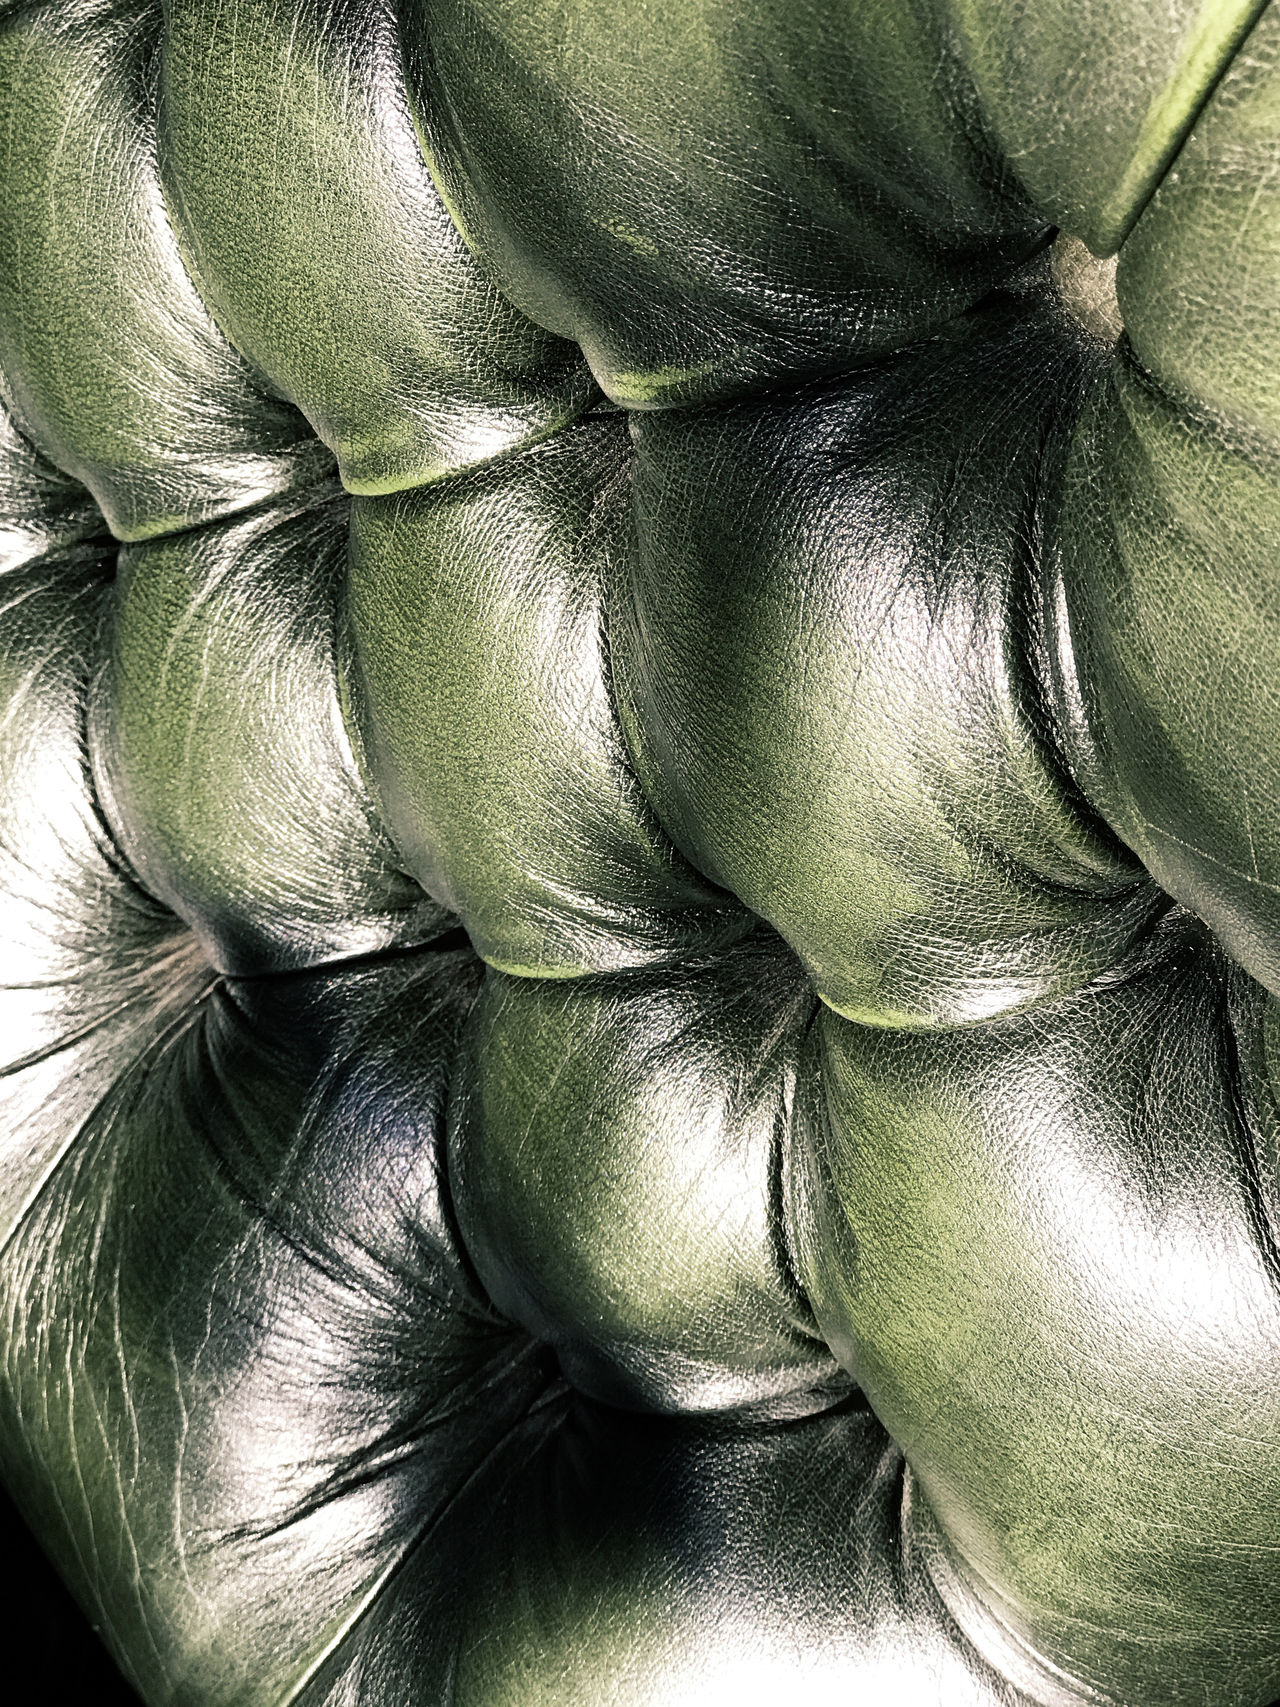 Green leather chair detail. Bristol, Rhode Island, USA. Photo by Tom Bland. Chair Chairs Close-up Decor Detail Furniture Furniture Design Green Green Color Green Leather Chair Indoors  Interior Interior Decor Interior Views IPhone IPhoneography Leather Leather Chair Old-fashioned Style Textural Texture Textured